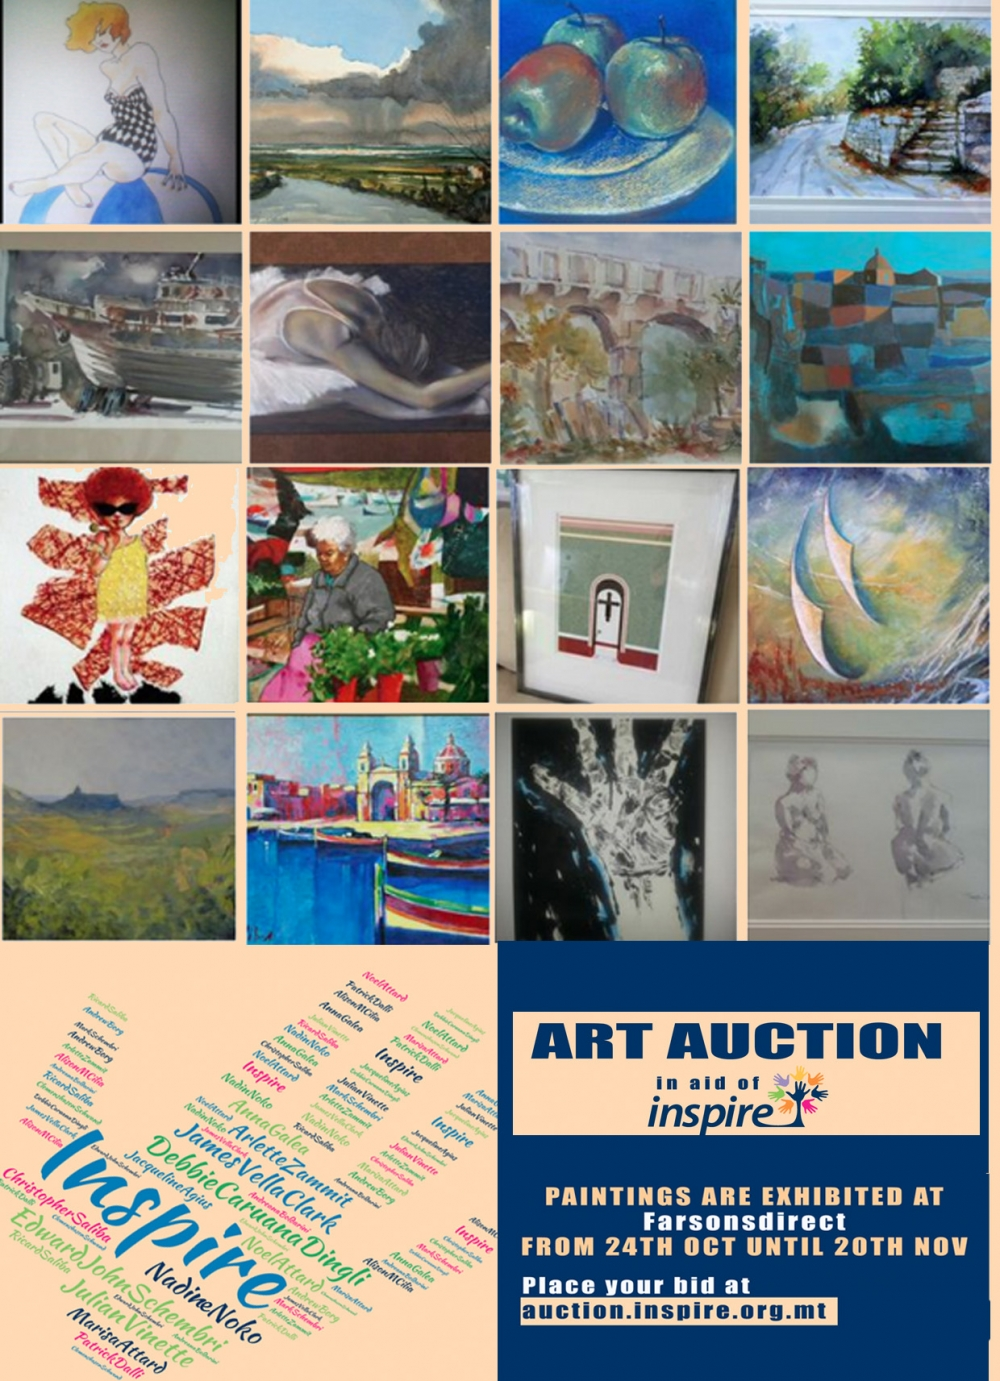 Artists to auction off works to raise funds for Inspire Foundation